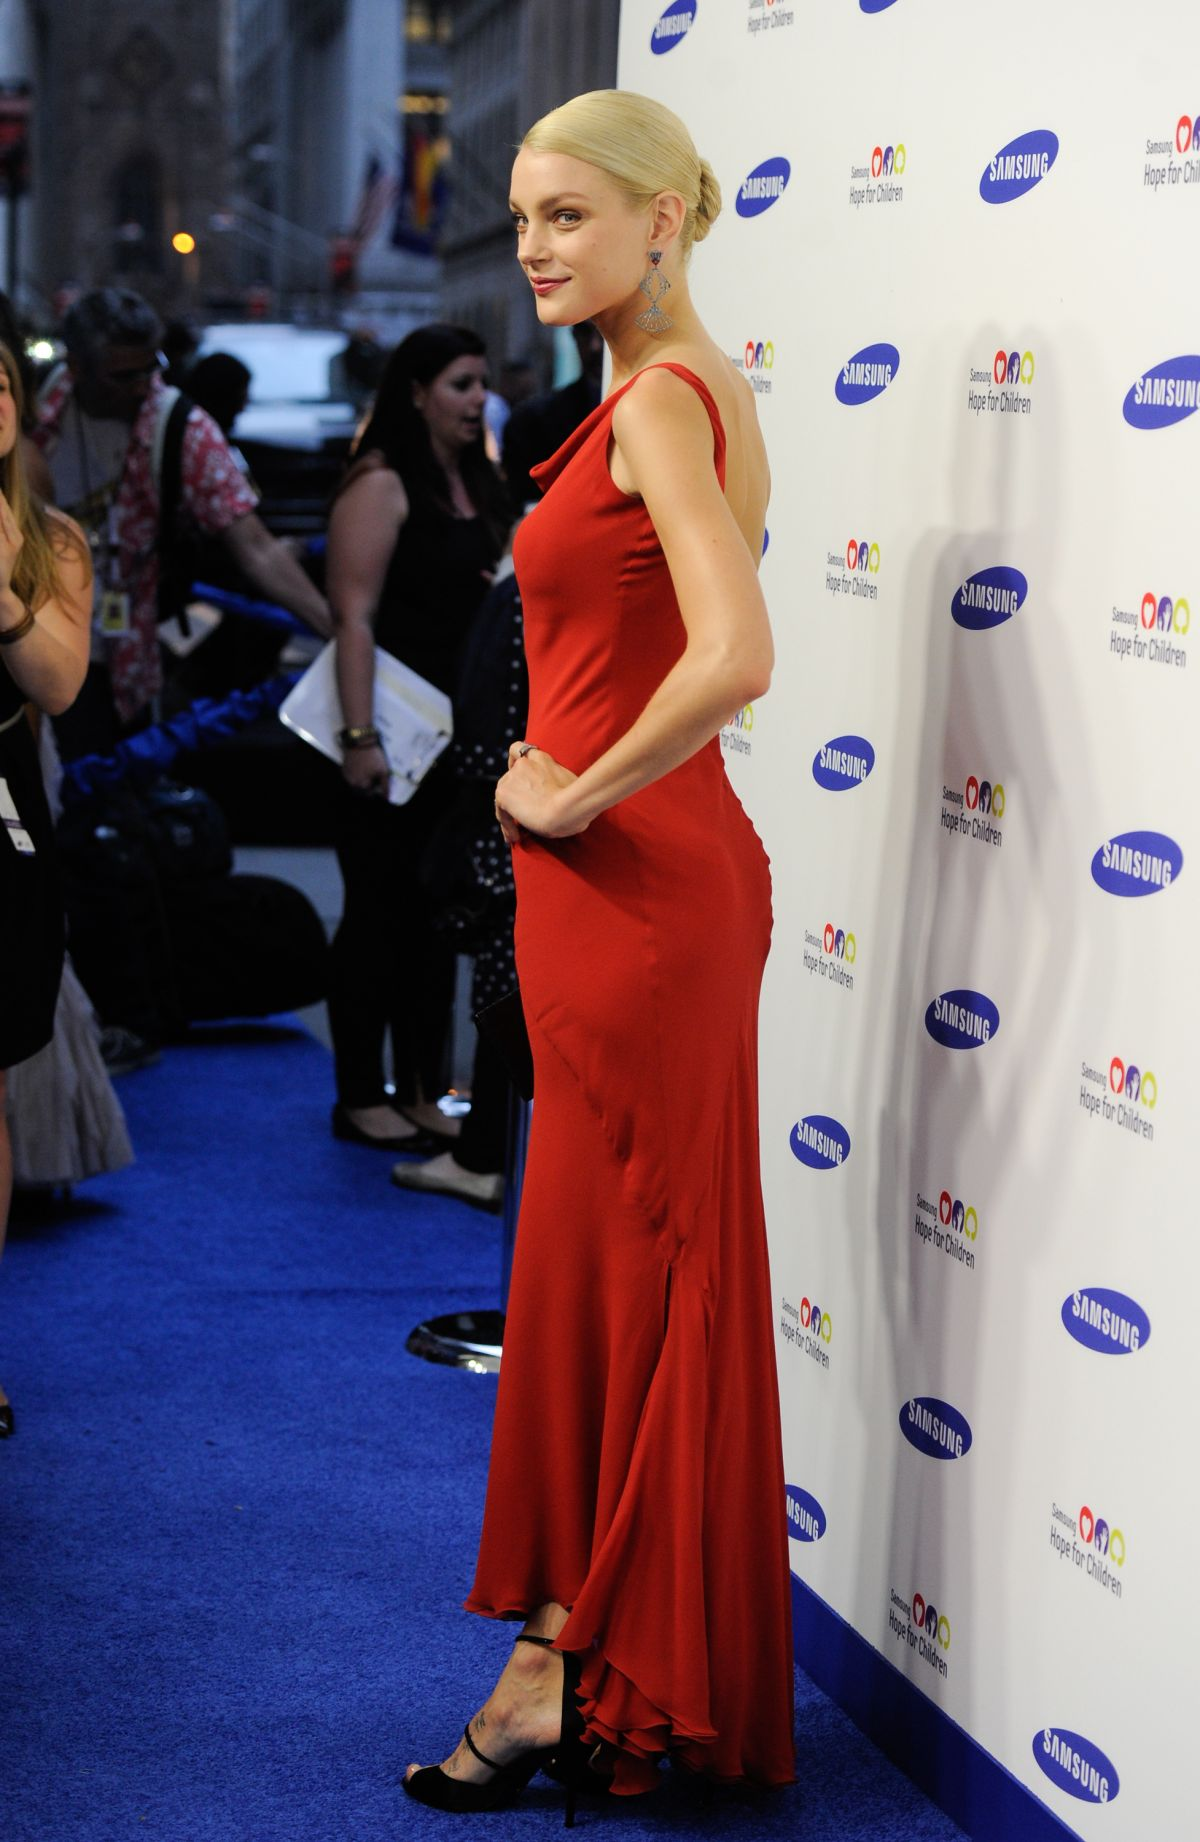 JESSICA STAM at Samsung Hope for Children Gala in New York